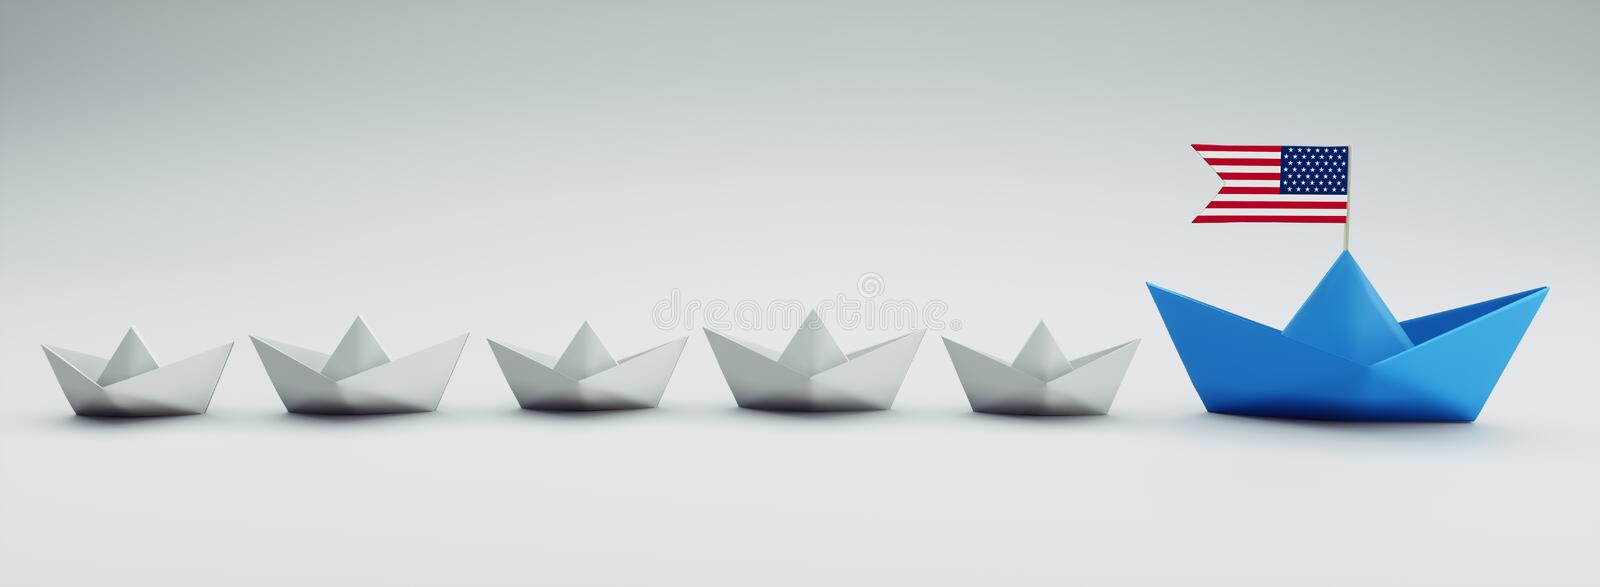 Group of white and blue paper boats - 3D illustration vector illustration